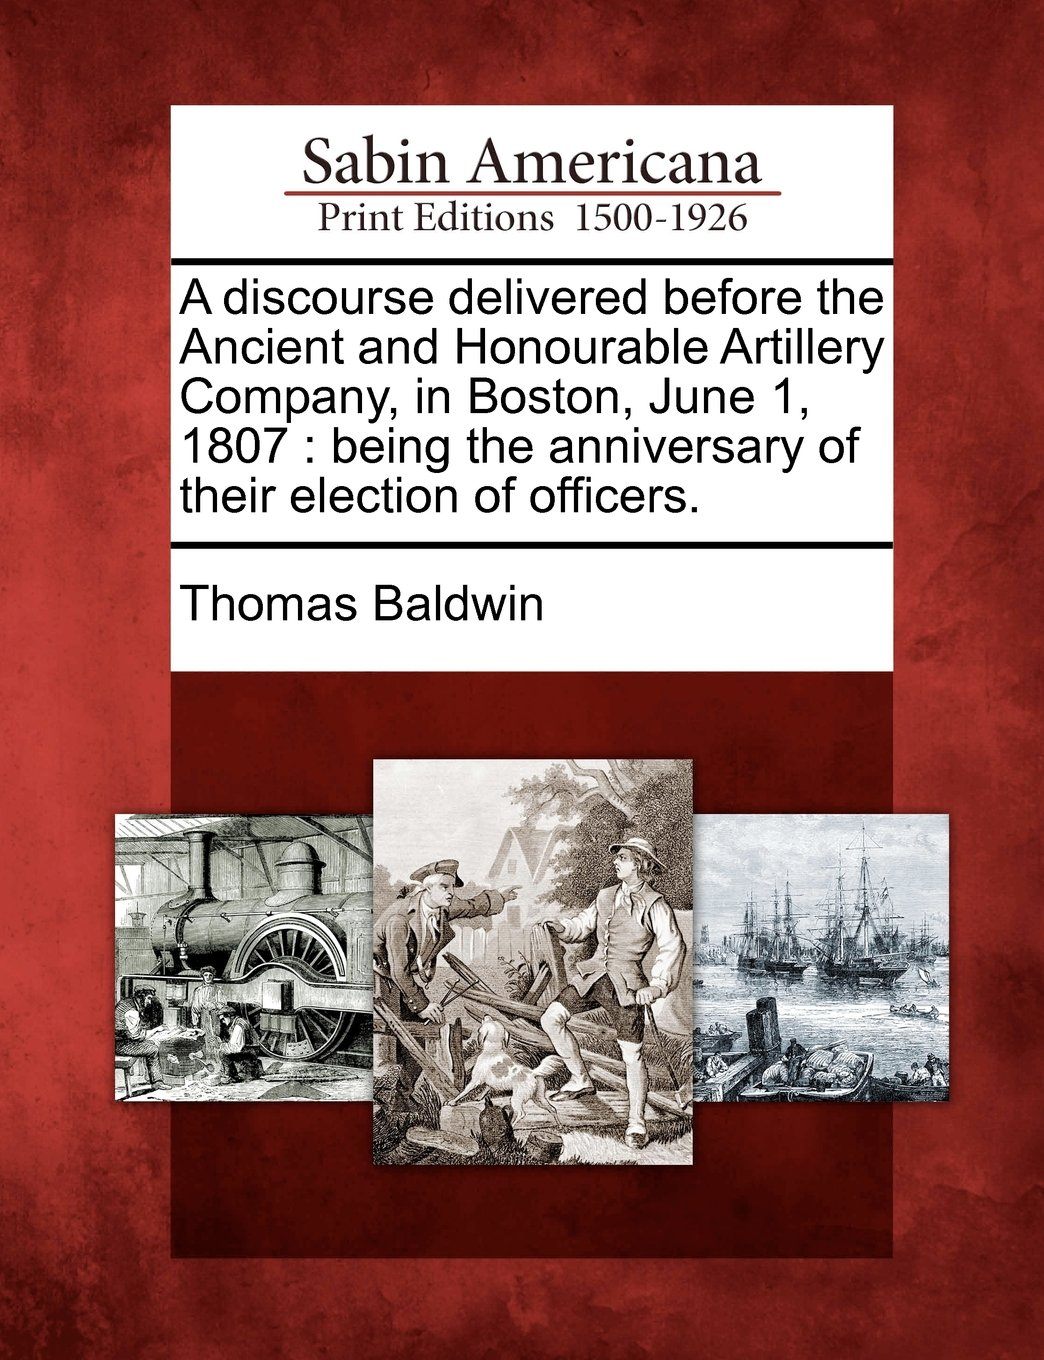 Download A discourse delivered before the Ancient and Honourable Artillery Company, in Boston, June 1, 1807: being the anniversary of their election of officers. ebook